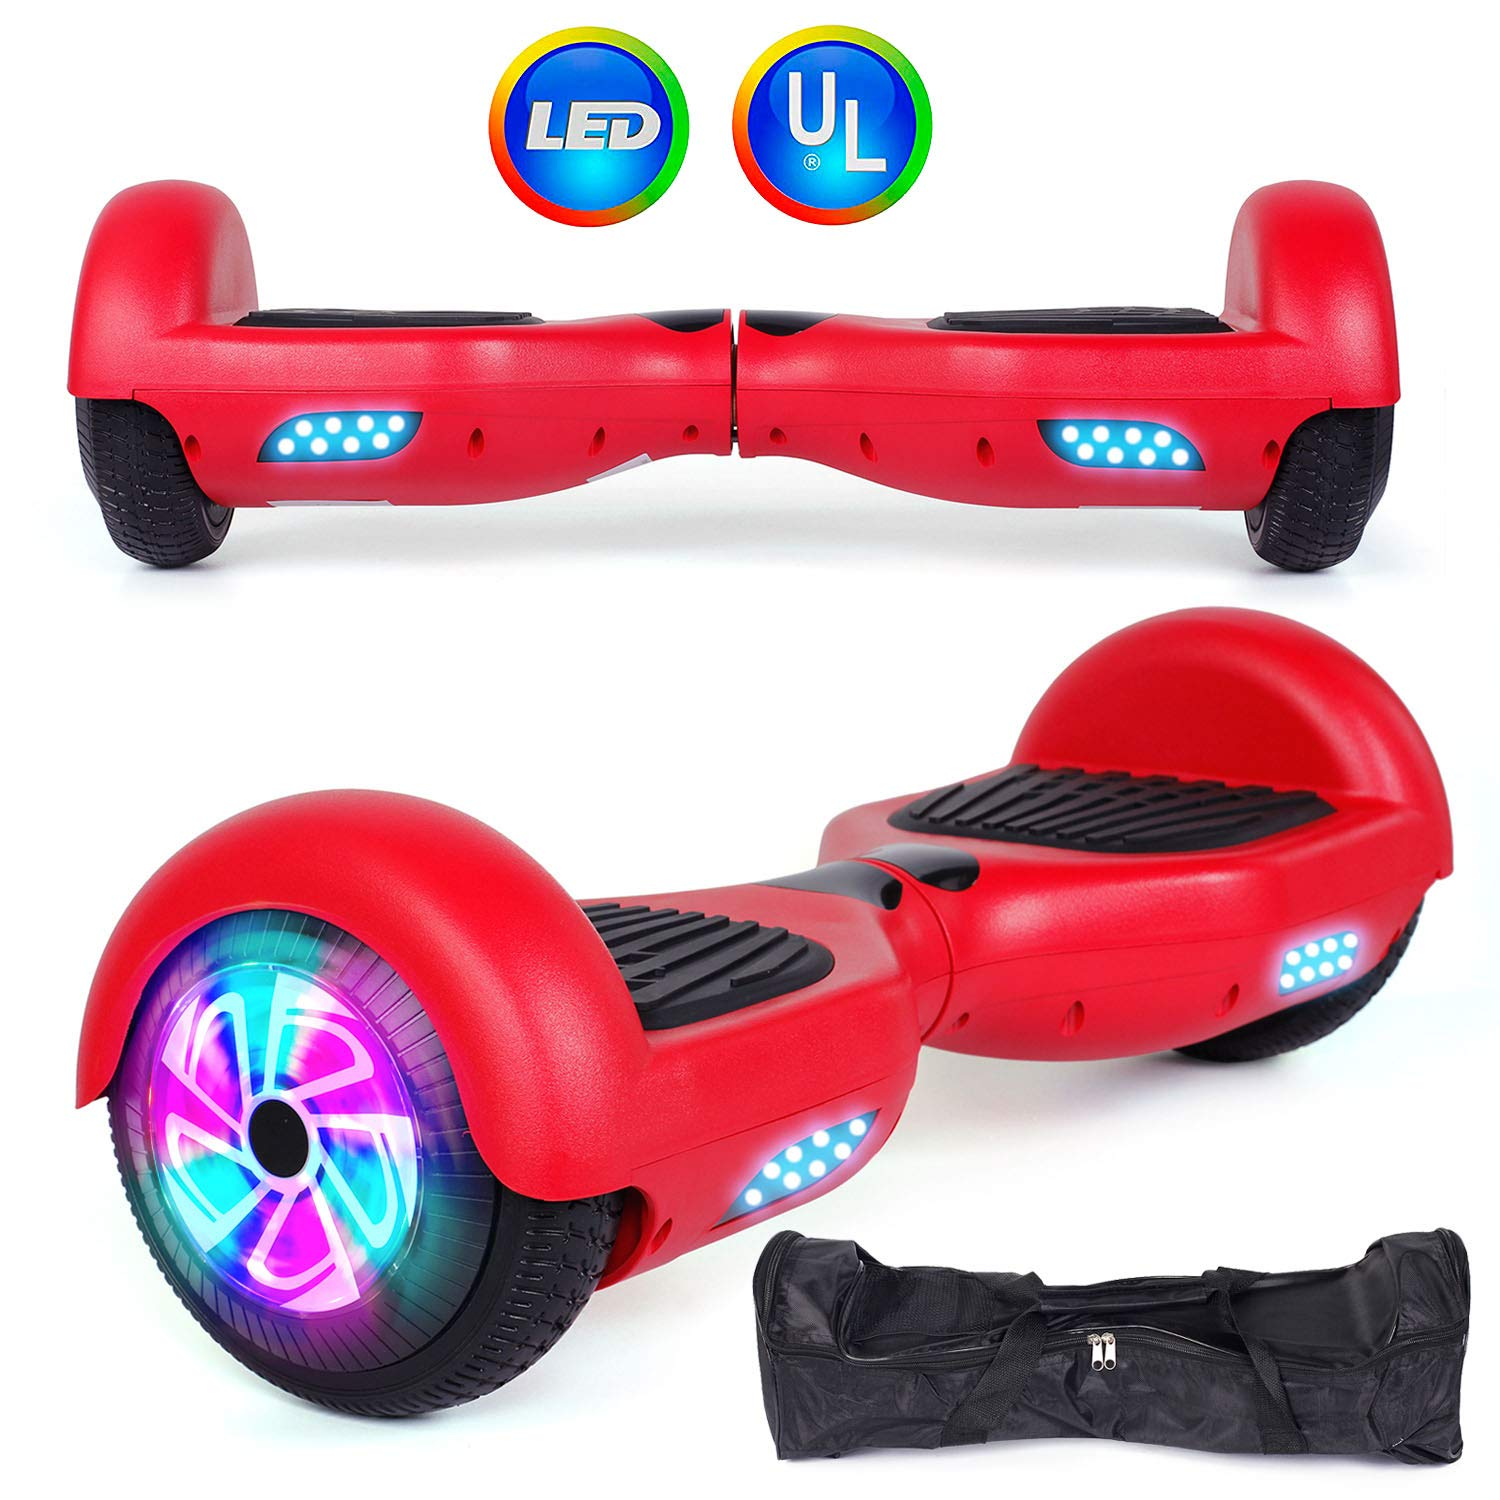 Felimoda Self Balancing Hoverboards with LED Light and Carrying Case,6.5 Inch Two Wheel Smart Electric Scooter for Kids and Adults-UL2272 Certified (Red)